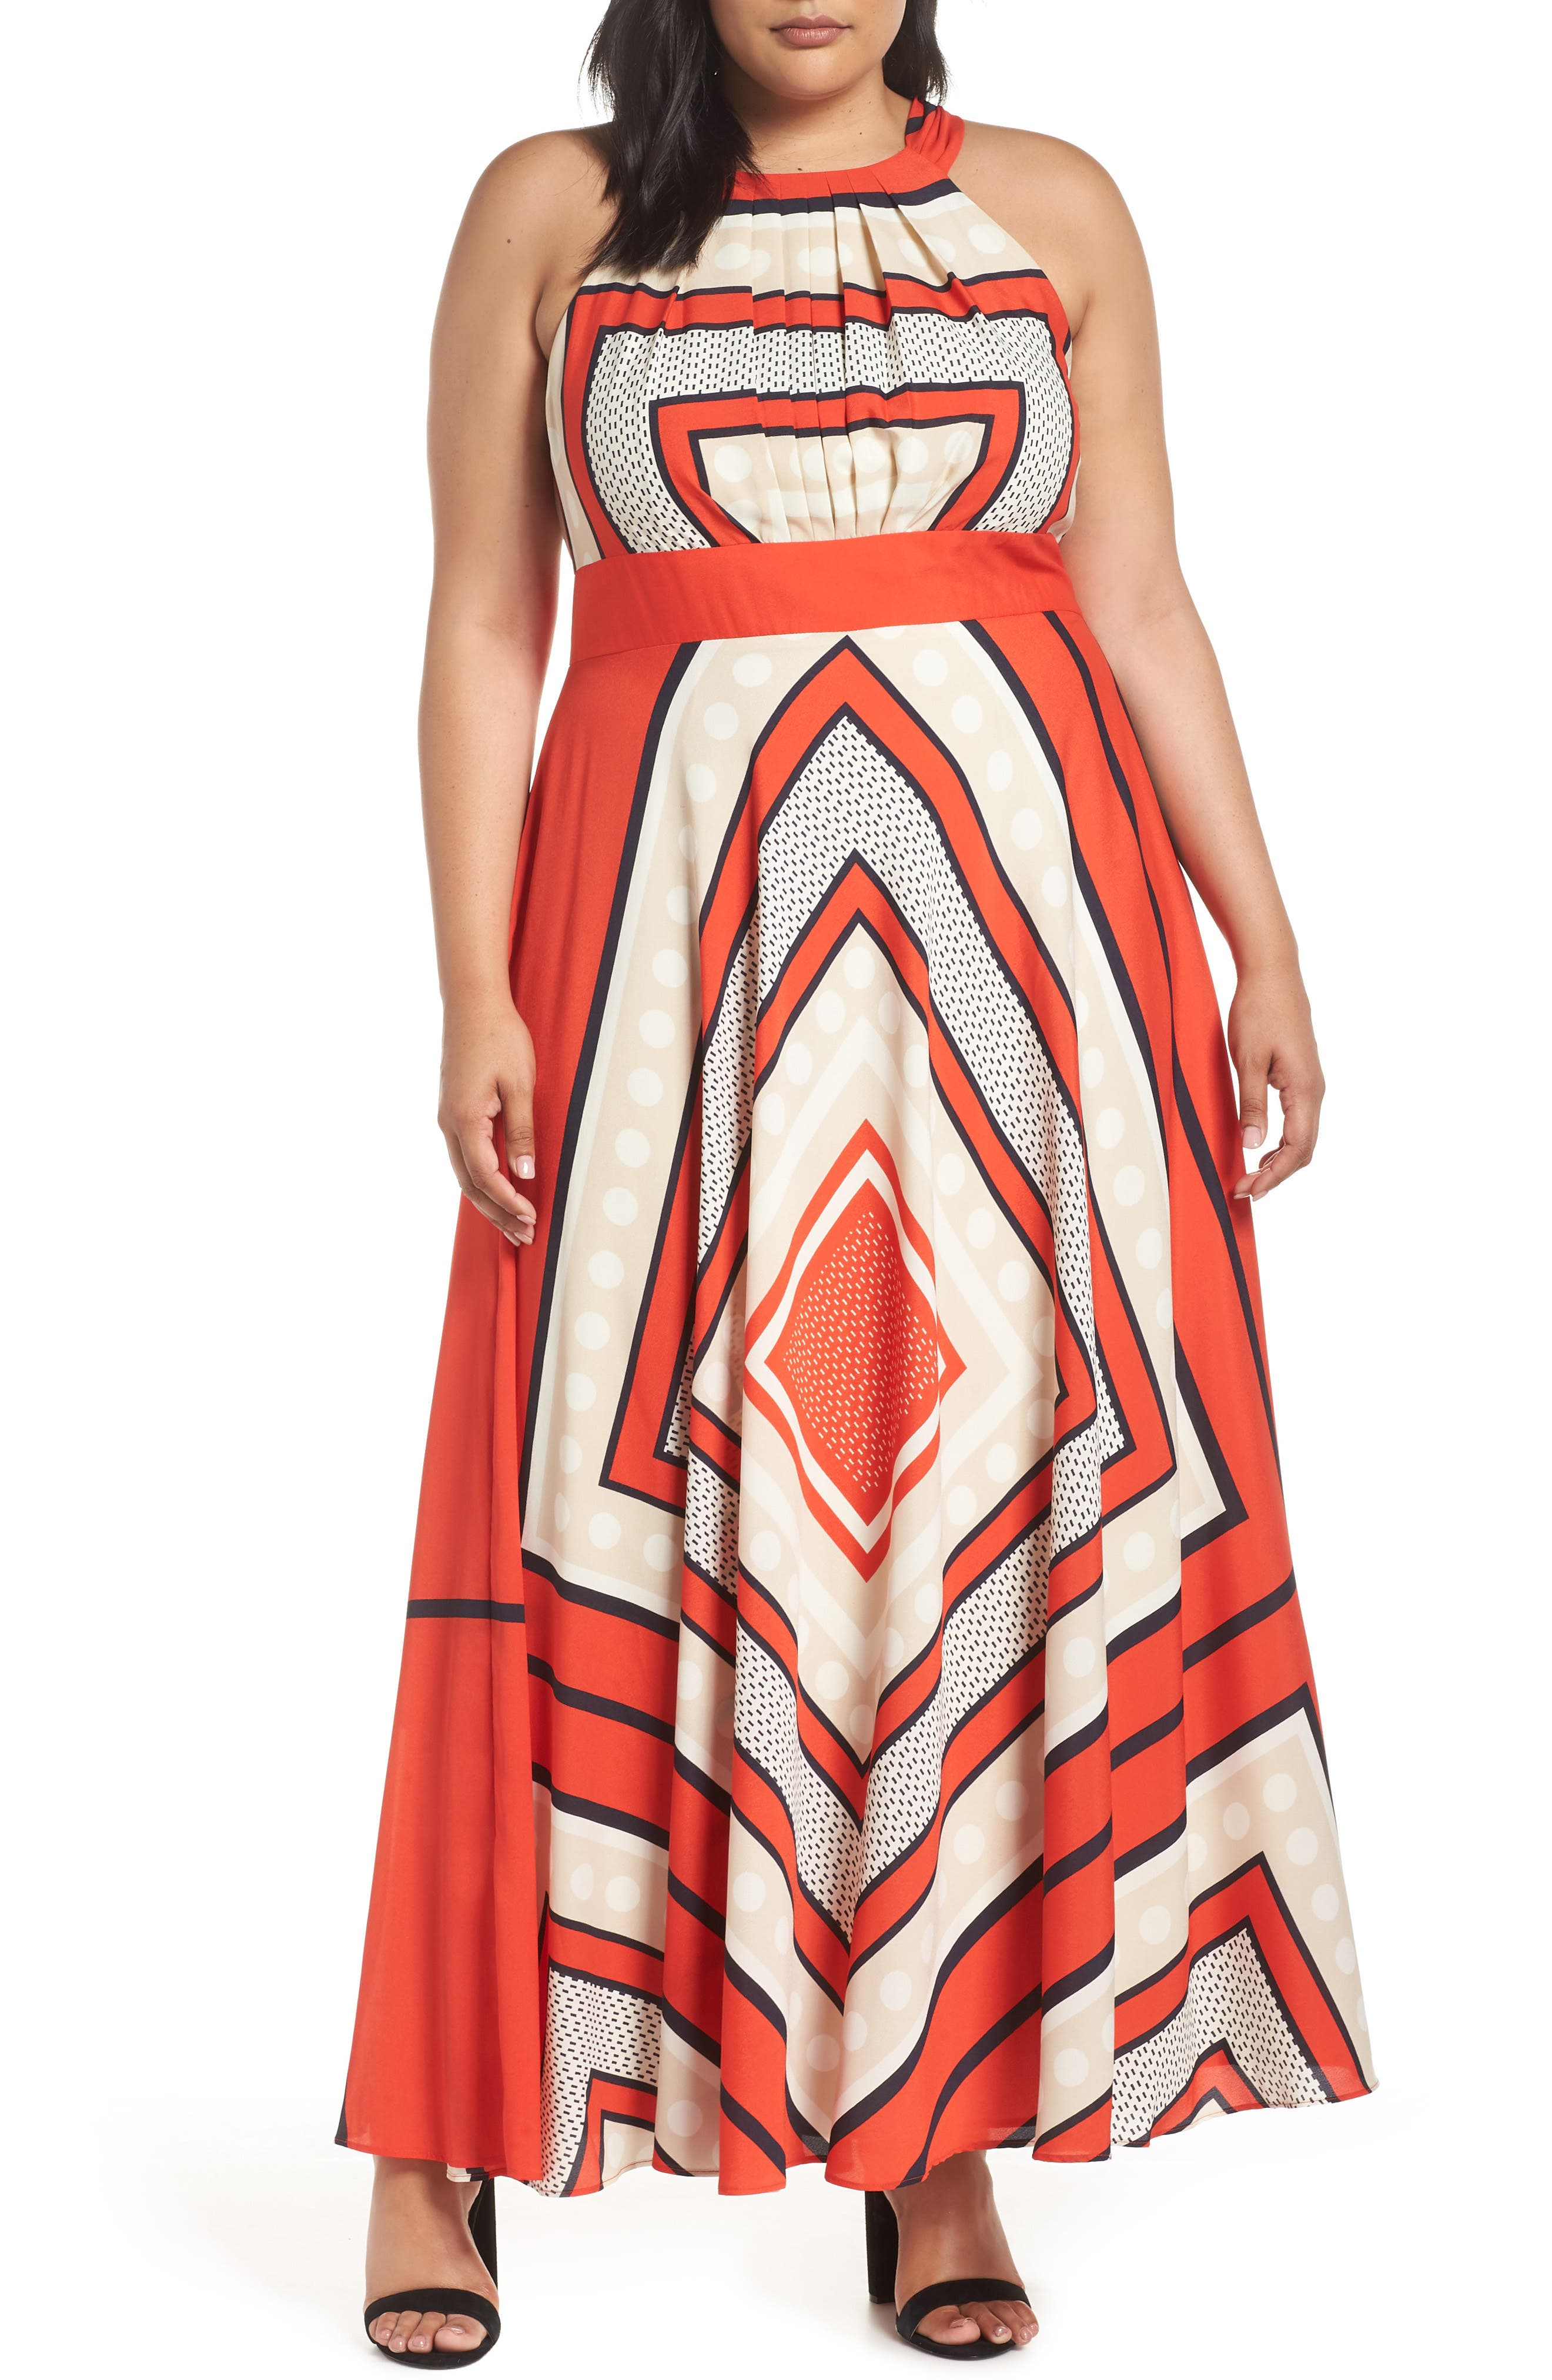 70s Prom, Formal, Evening, Party Dresses Plus Size Womens Eliza J Halter Scarf Print Woven Maxi Dress Size 14W - Red $100.80 AT vintagedancer.com